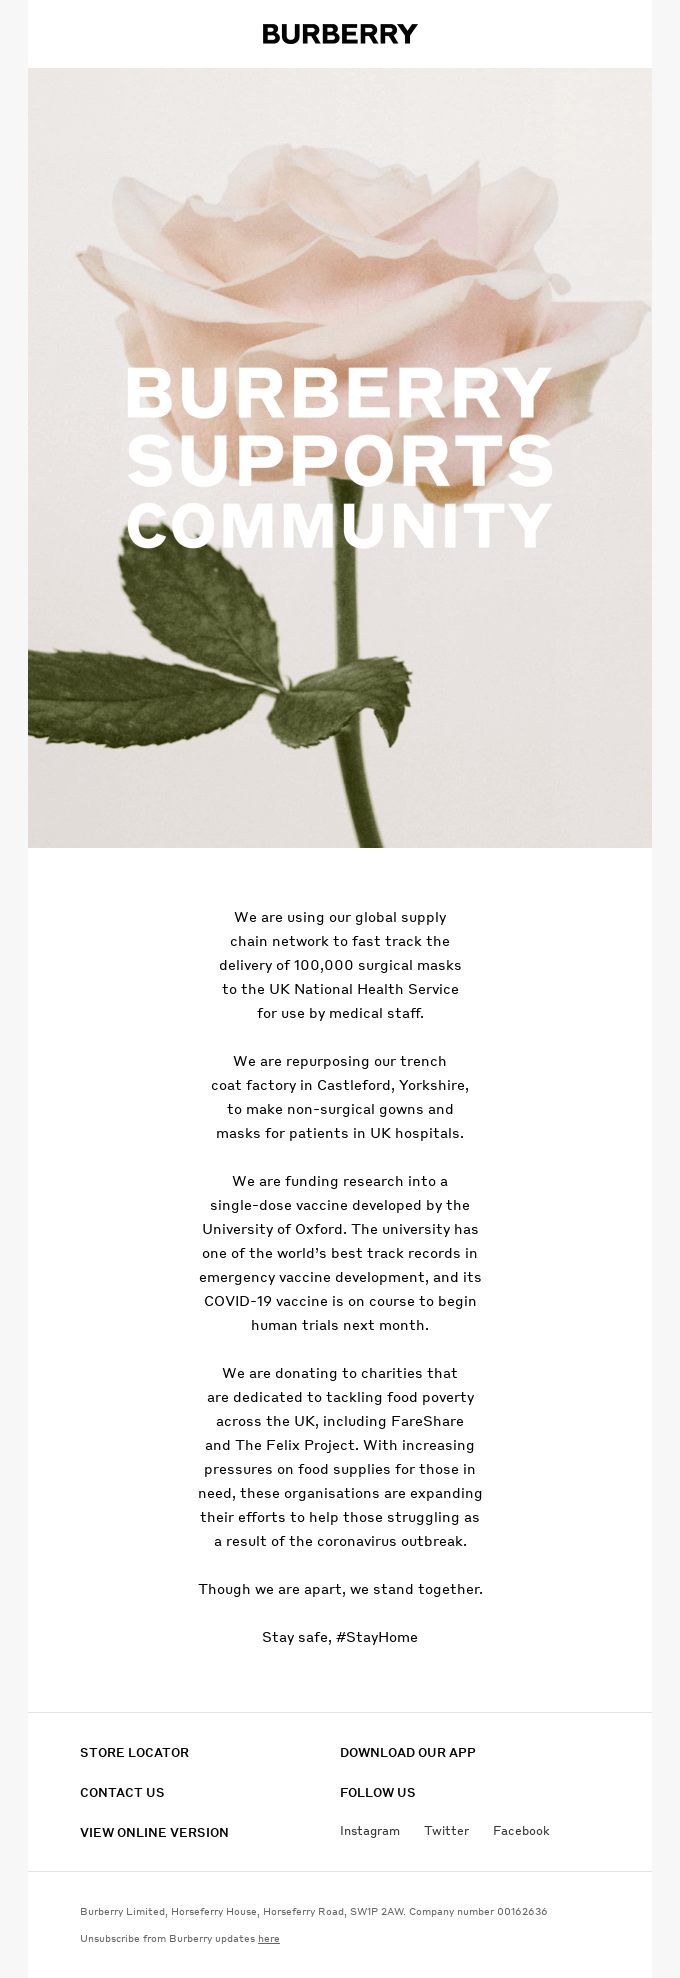 burberry support email